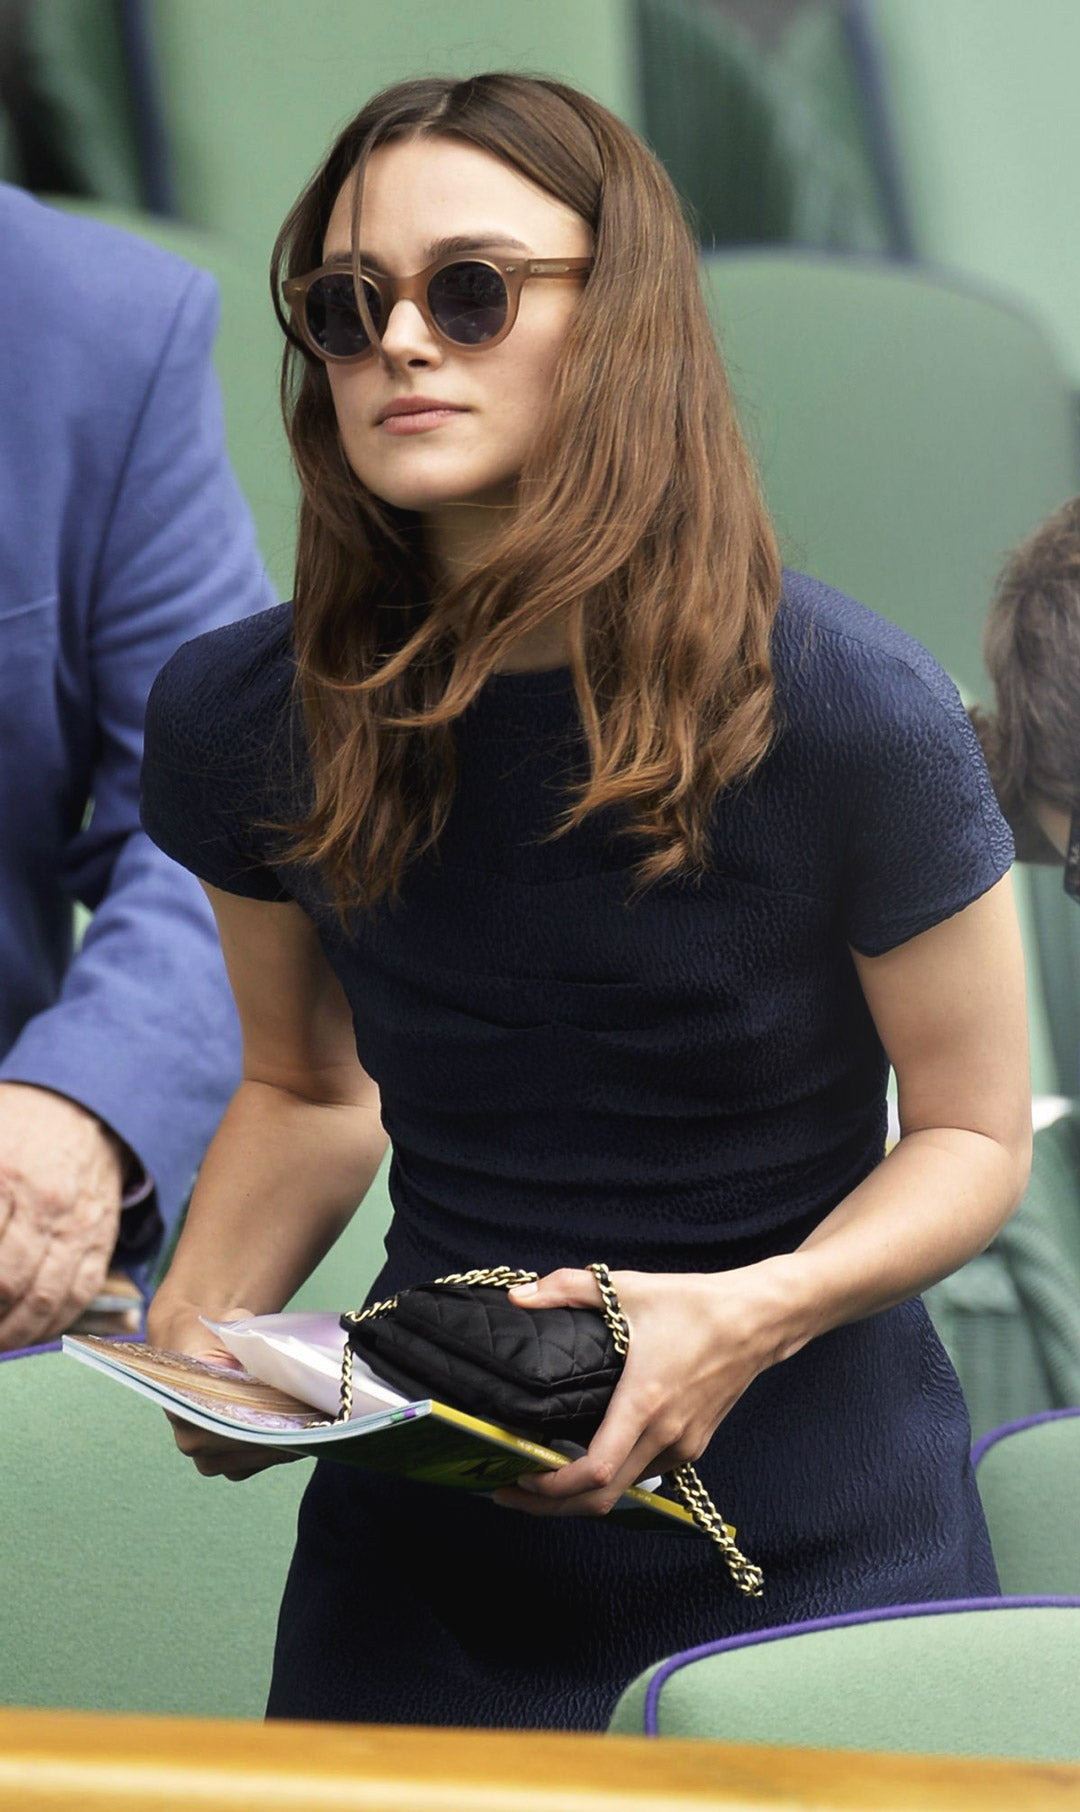 Keira Knightley wears classic round sunglasses at Wimbledon tennis tournament